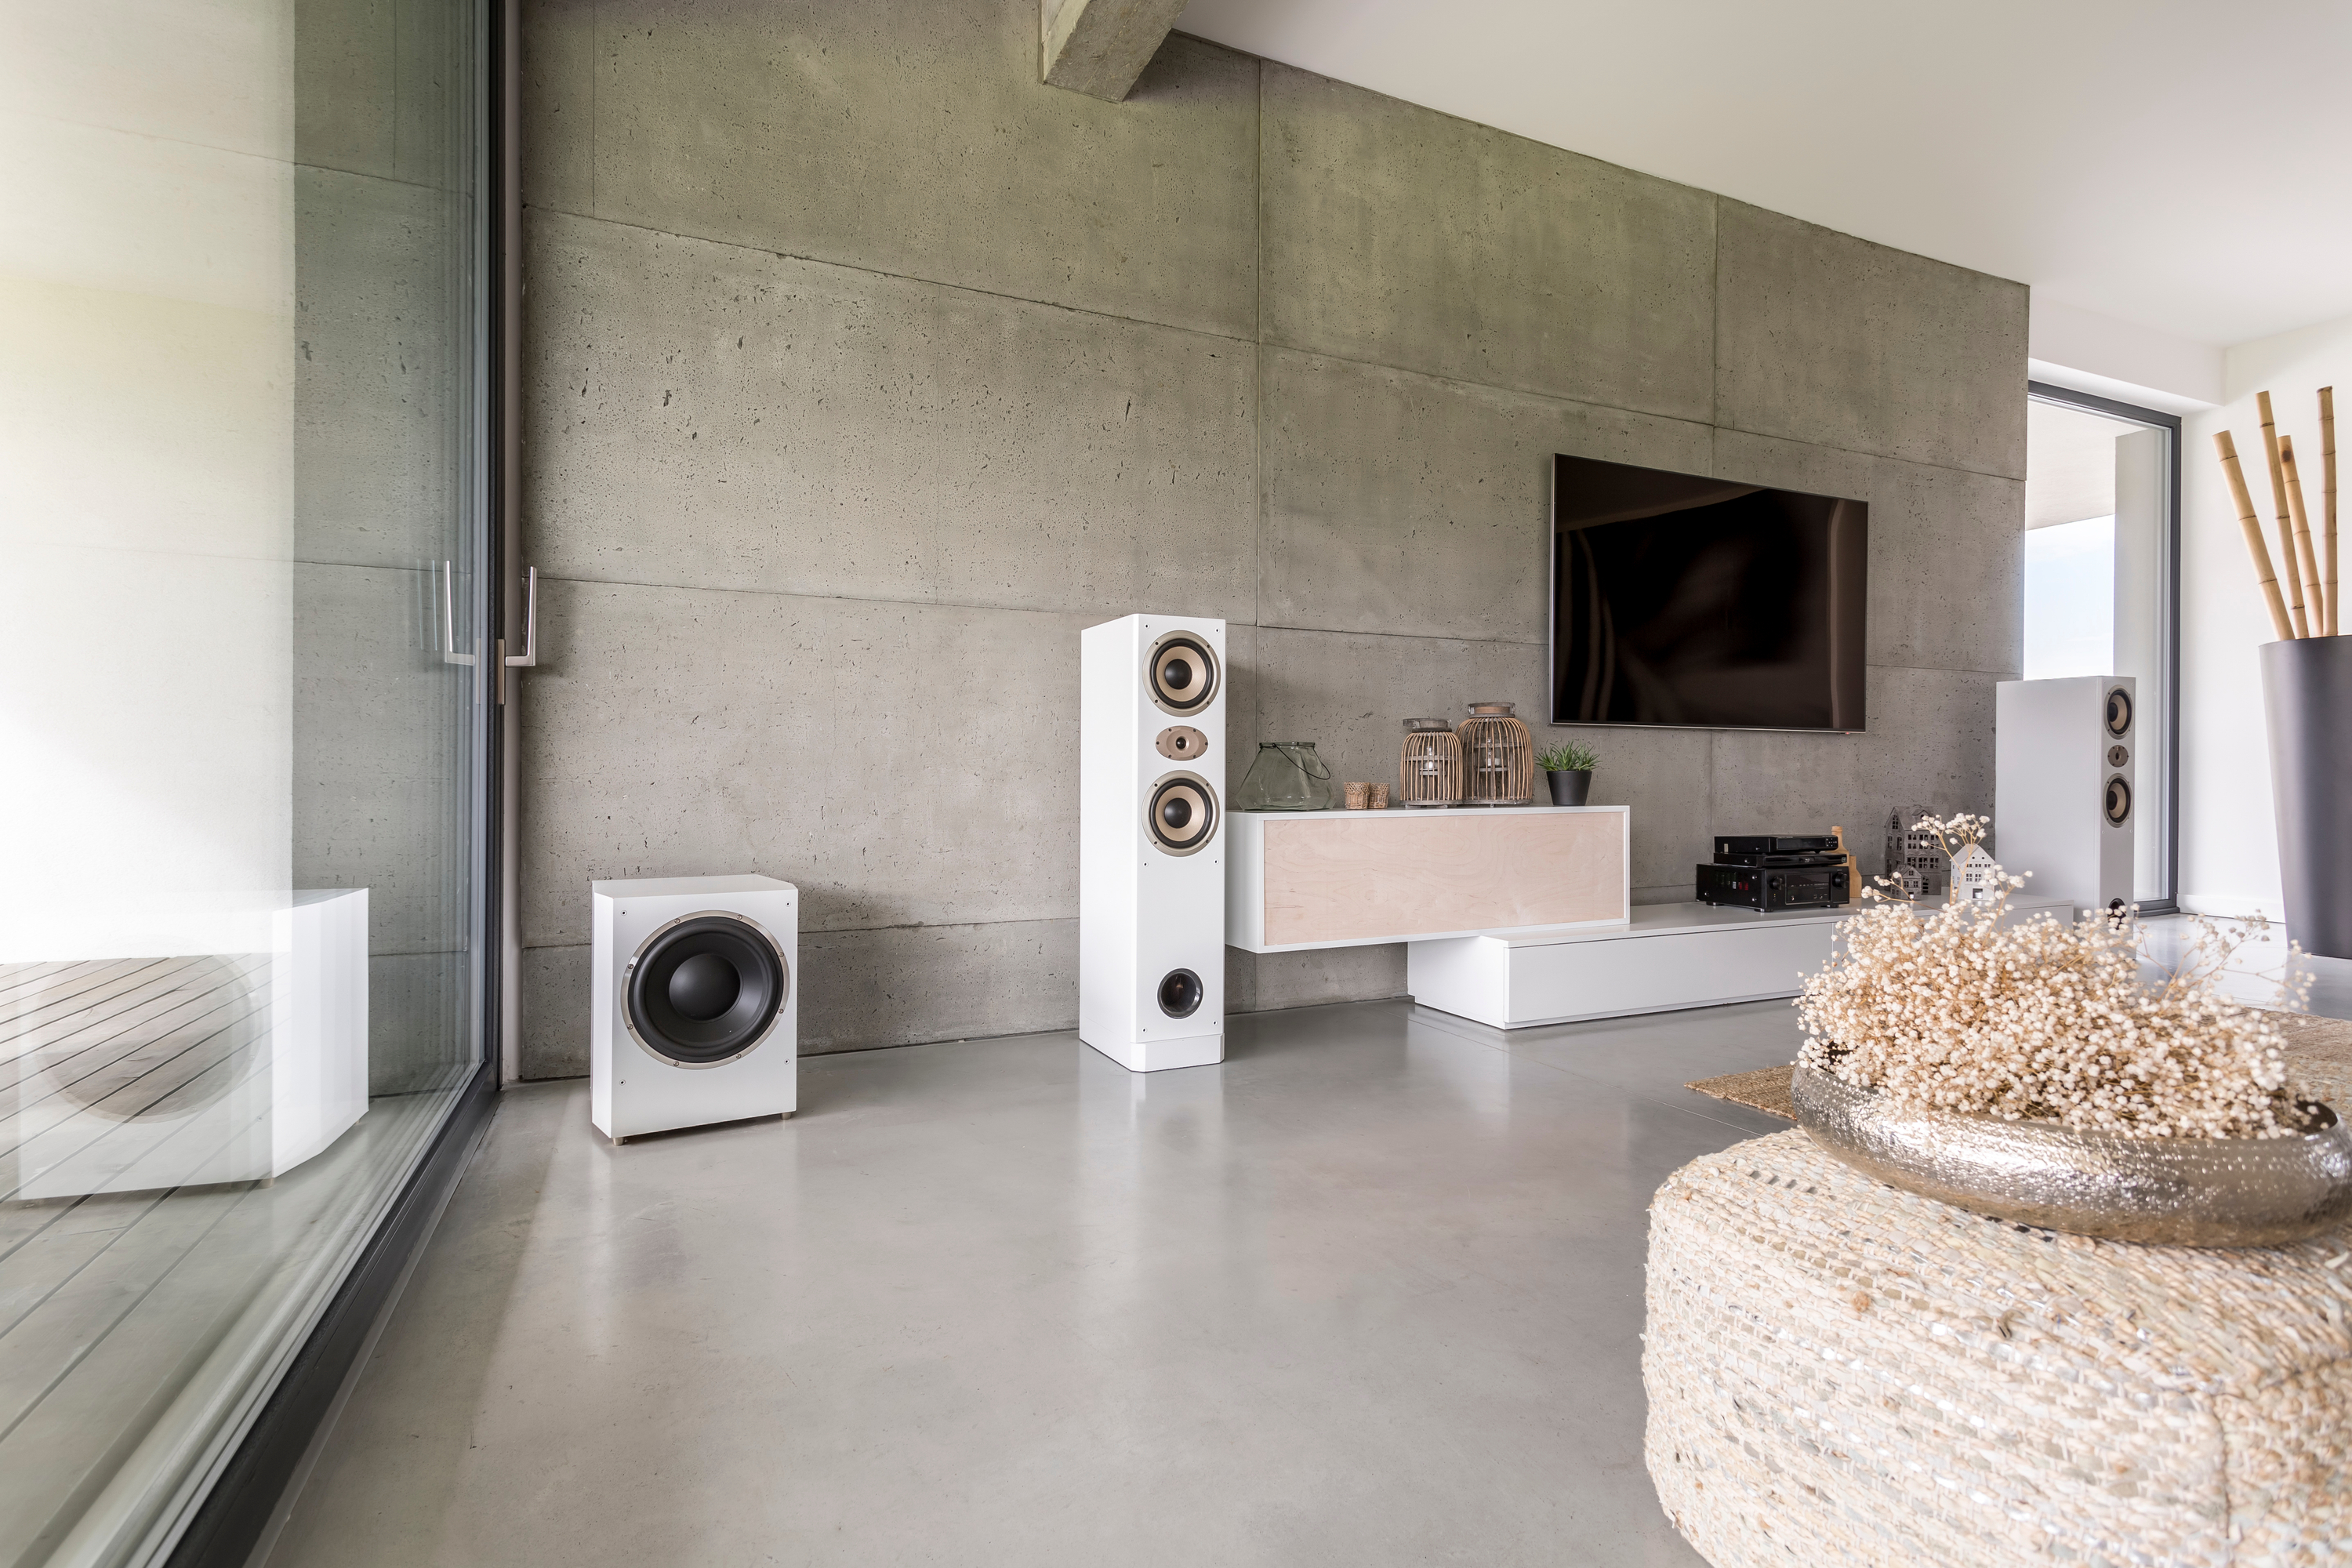 If you've ever considered having an audio room in your home, you should do it! These audio room ideas are amazing. See how you can add an audio room to your home.